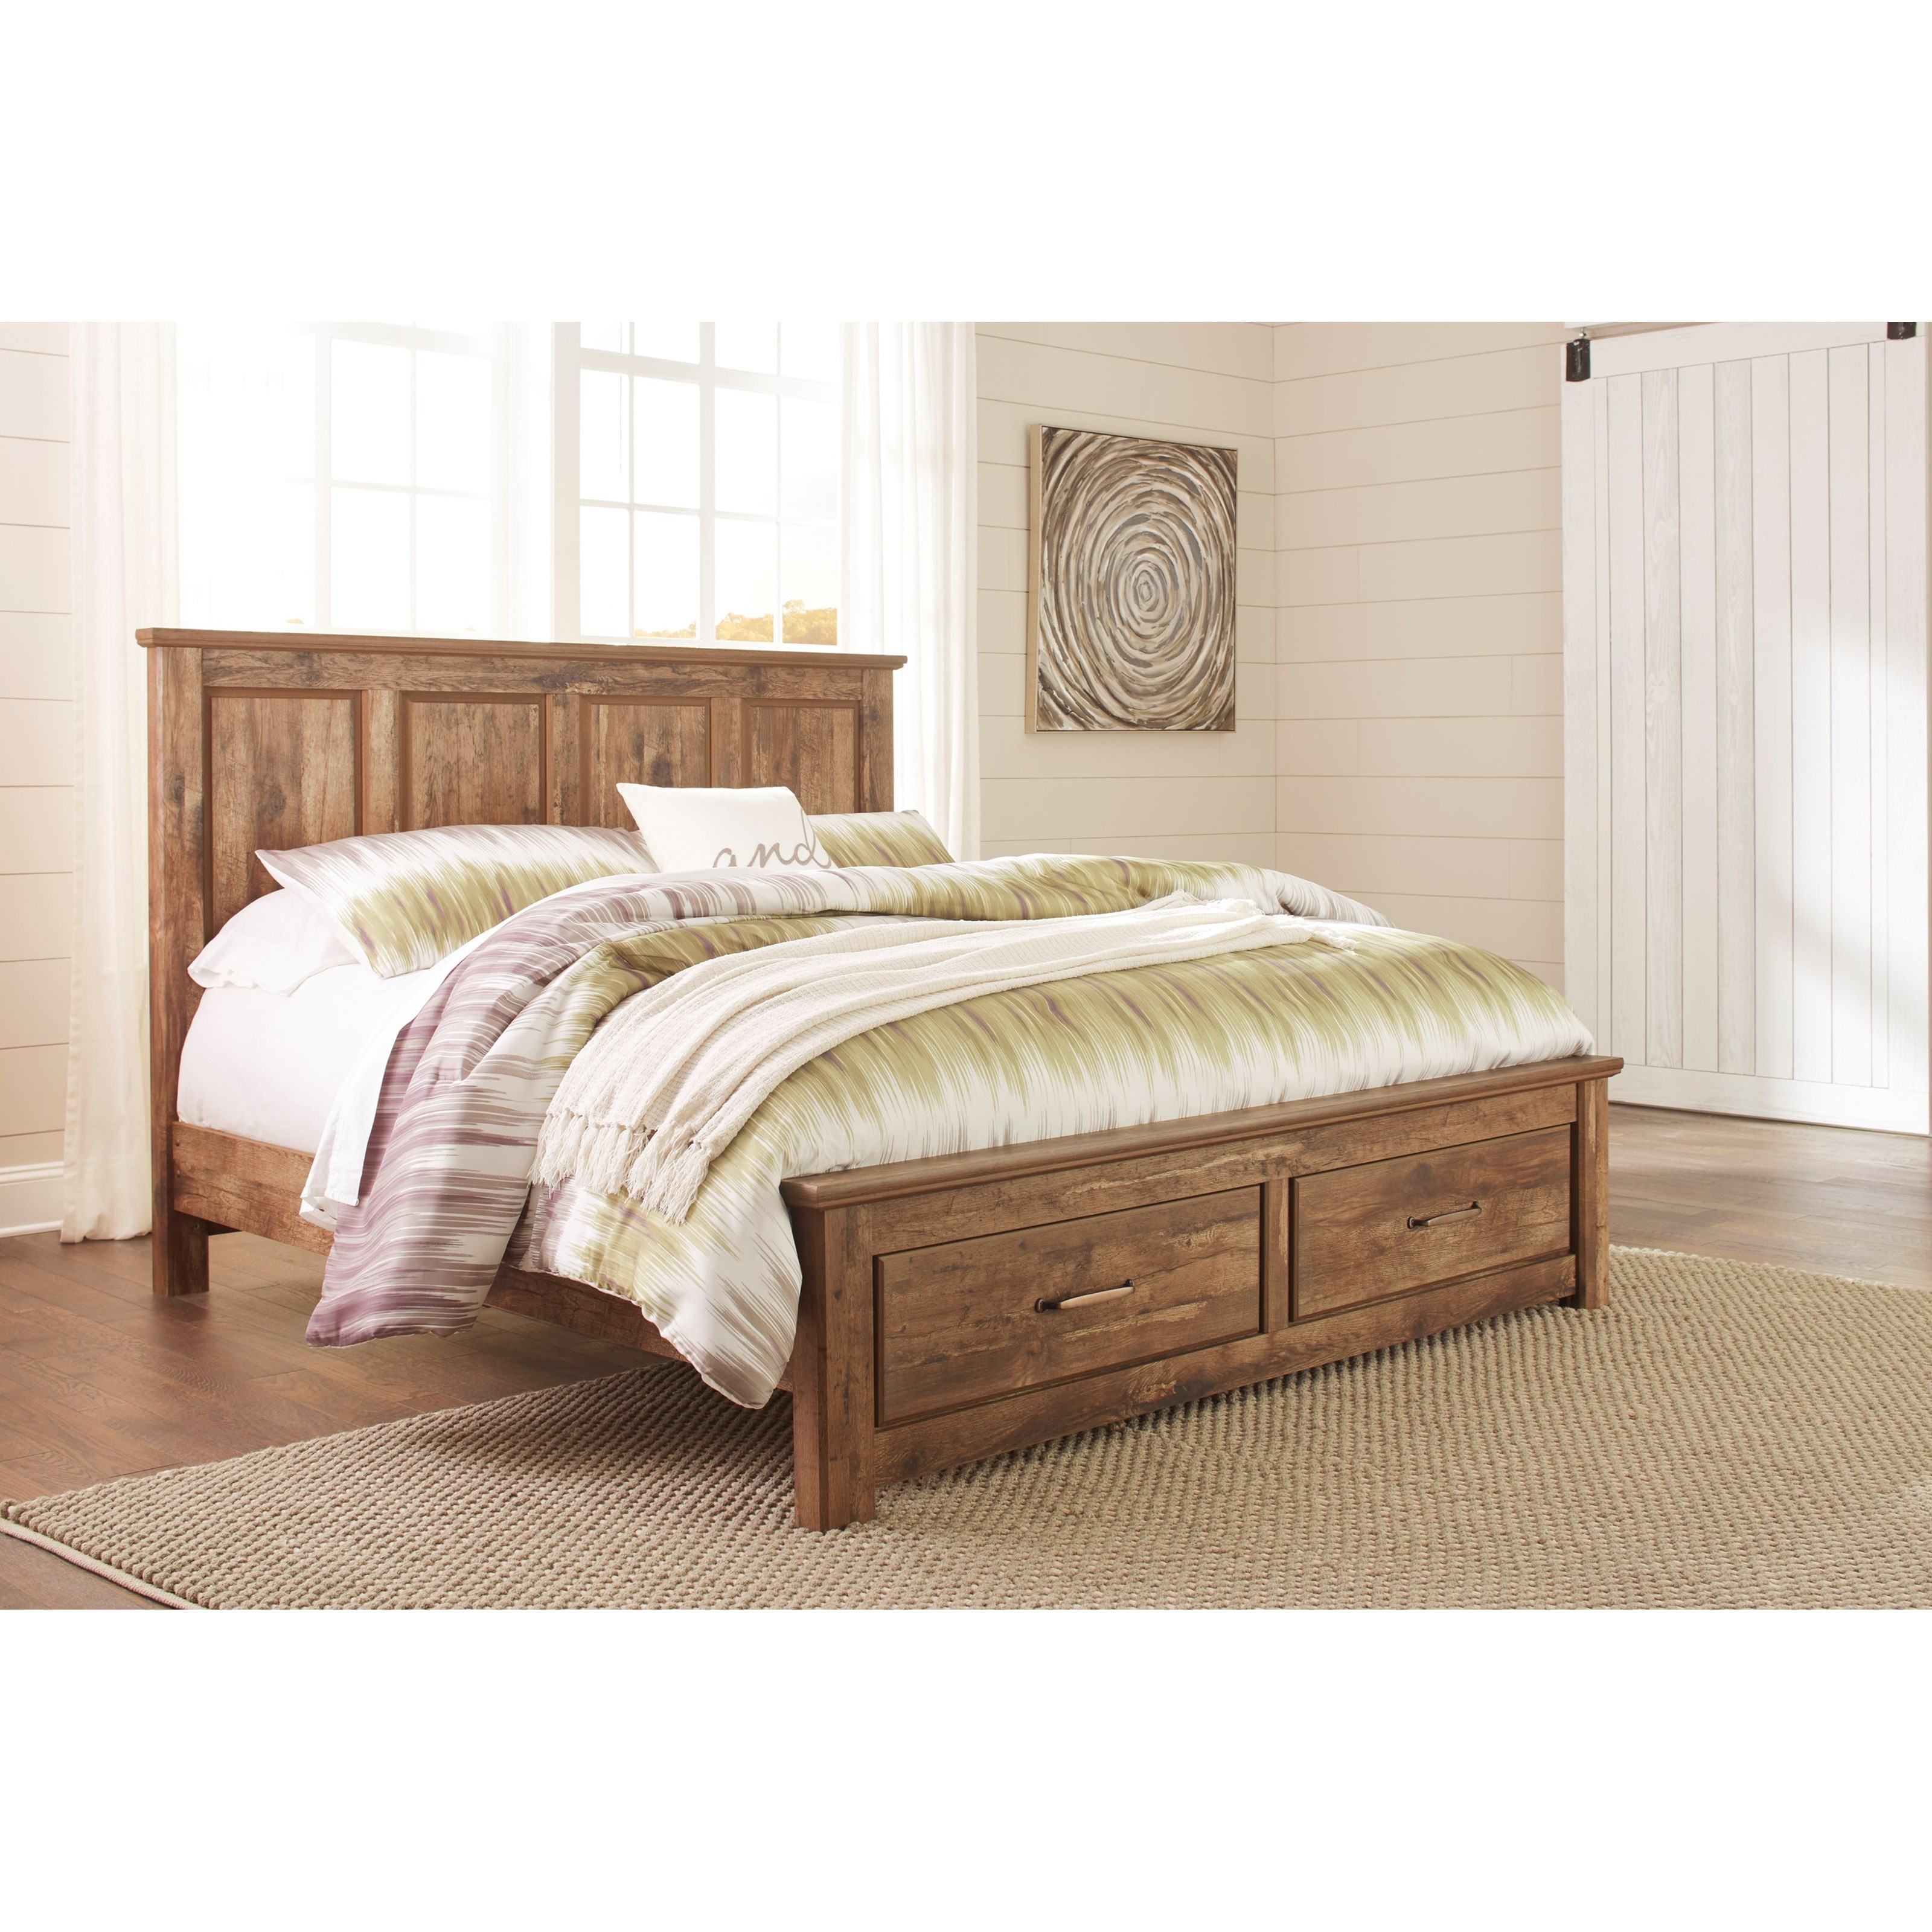 Ashley Signature Design Blaneville King Panel Storage Bed Johnny Janosik Platform Beds Low